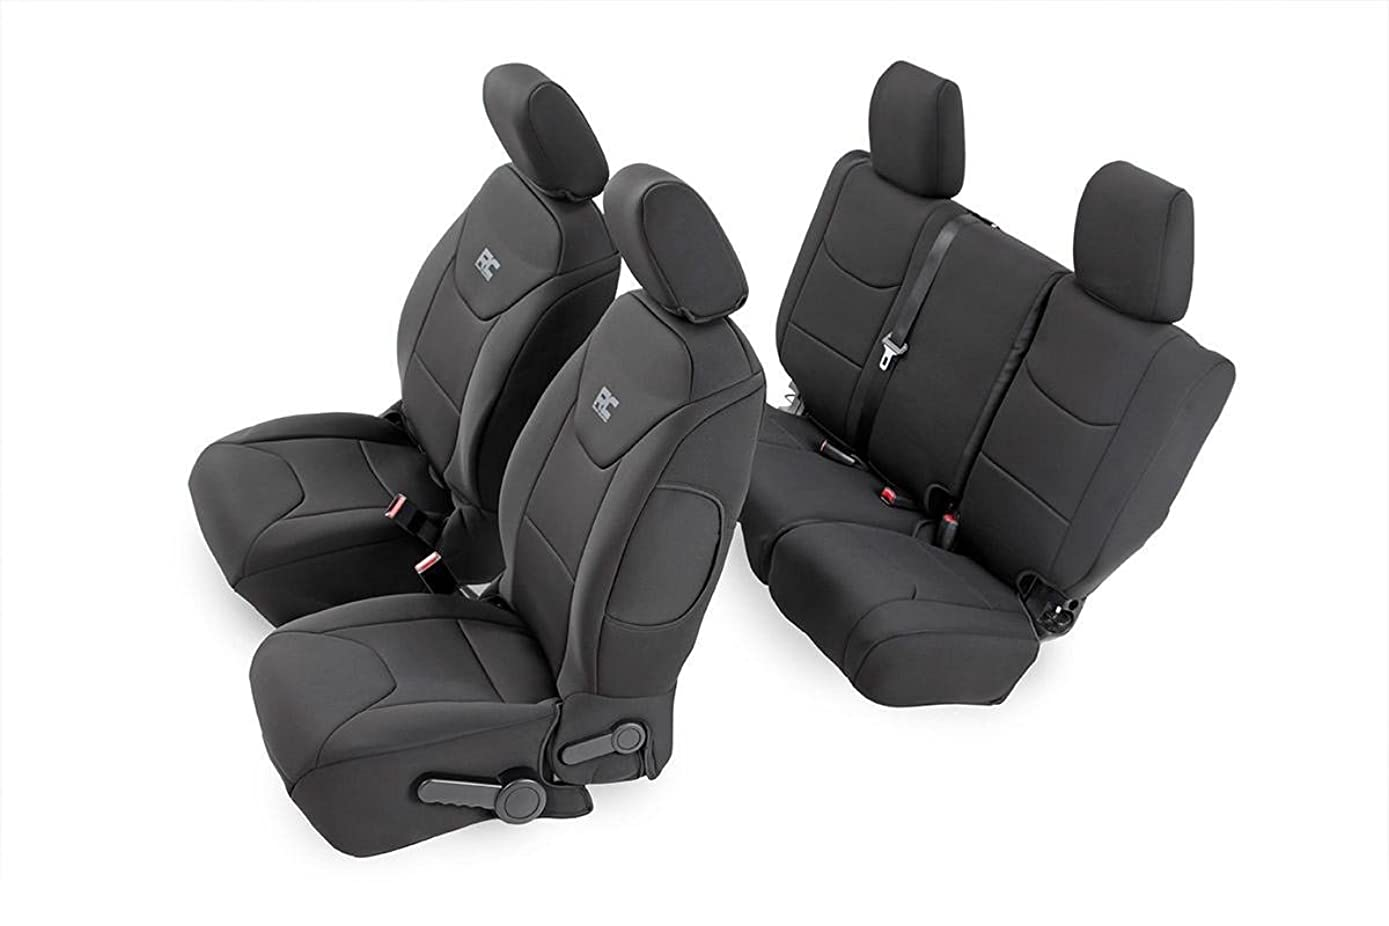 Rough Country 91004 Black Neoprene Seat Cover (Front/Rear) for 13-18 Jeep Wrangler Unlimited JK 4WD